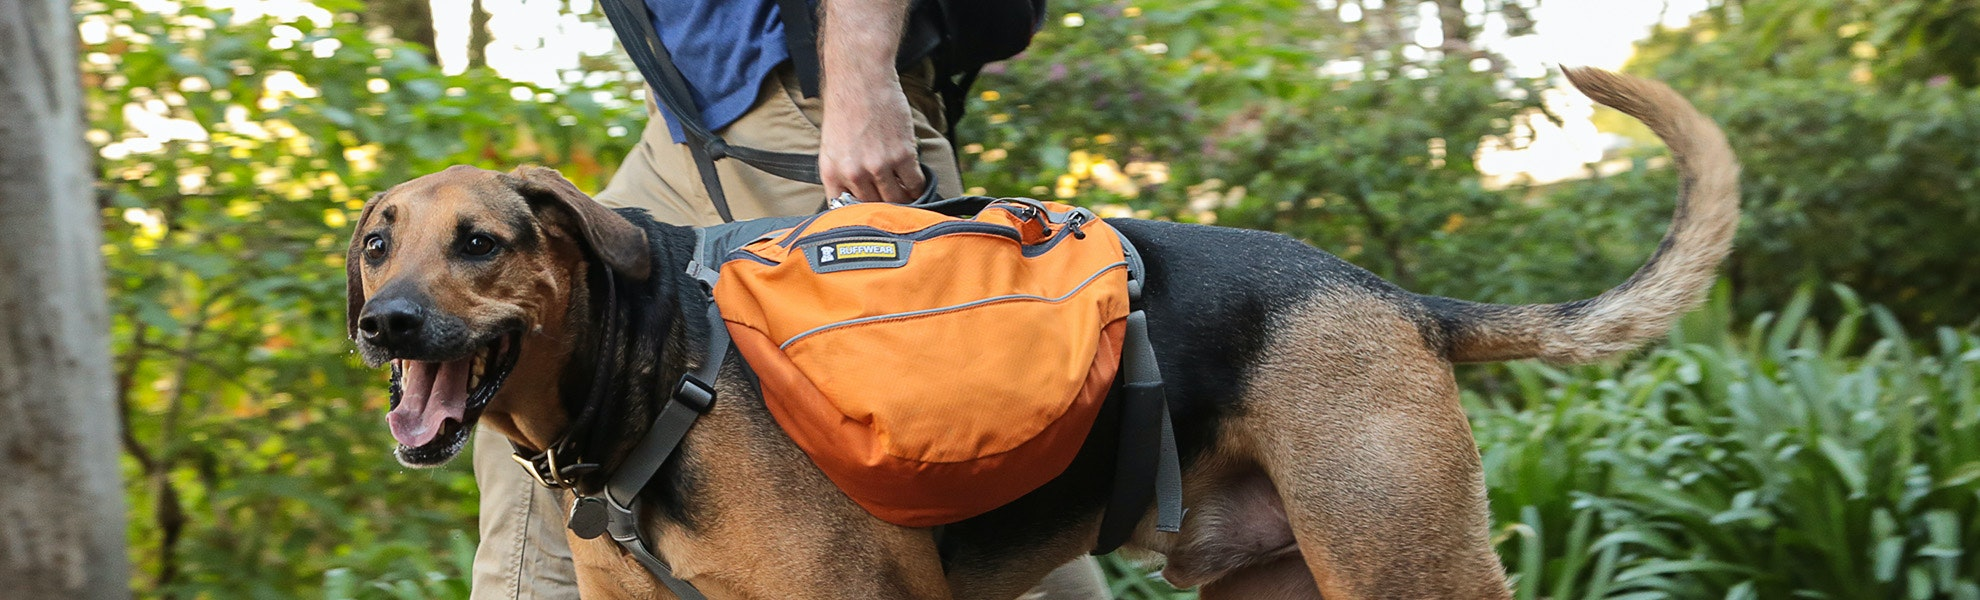 Ruffwear Approach and Palisades Dog Packs